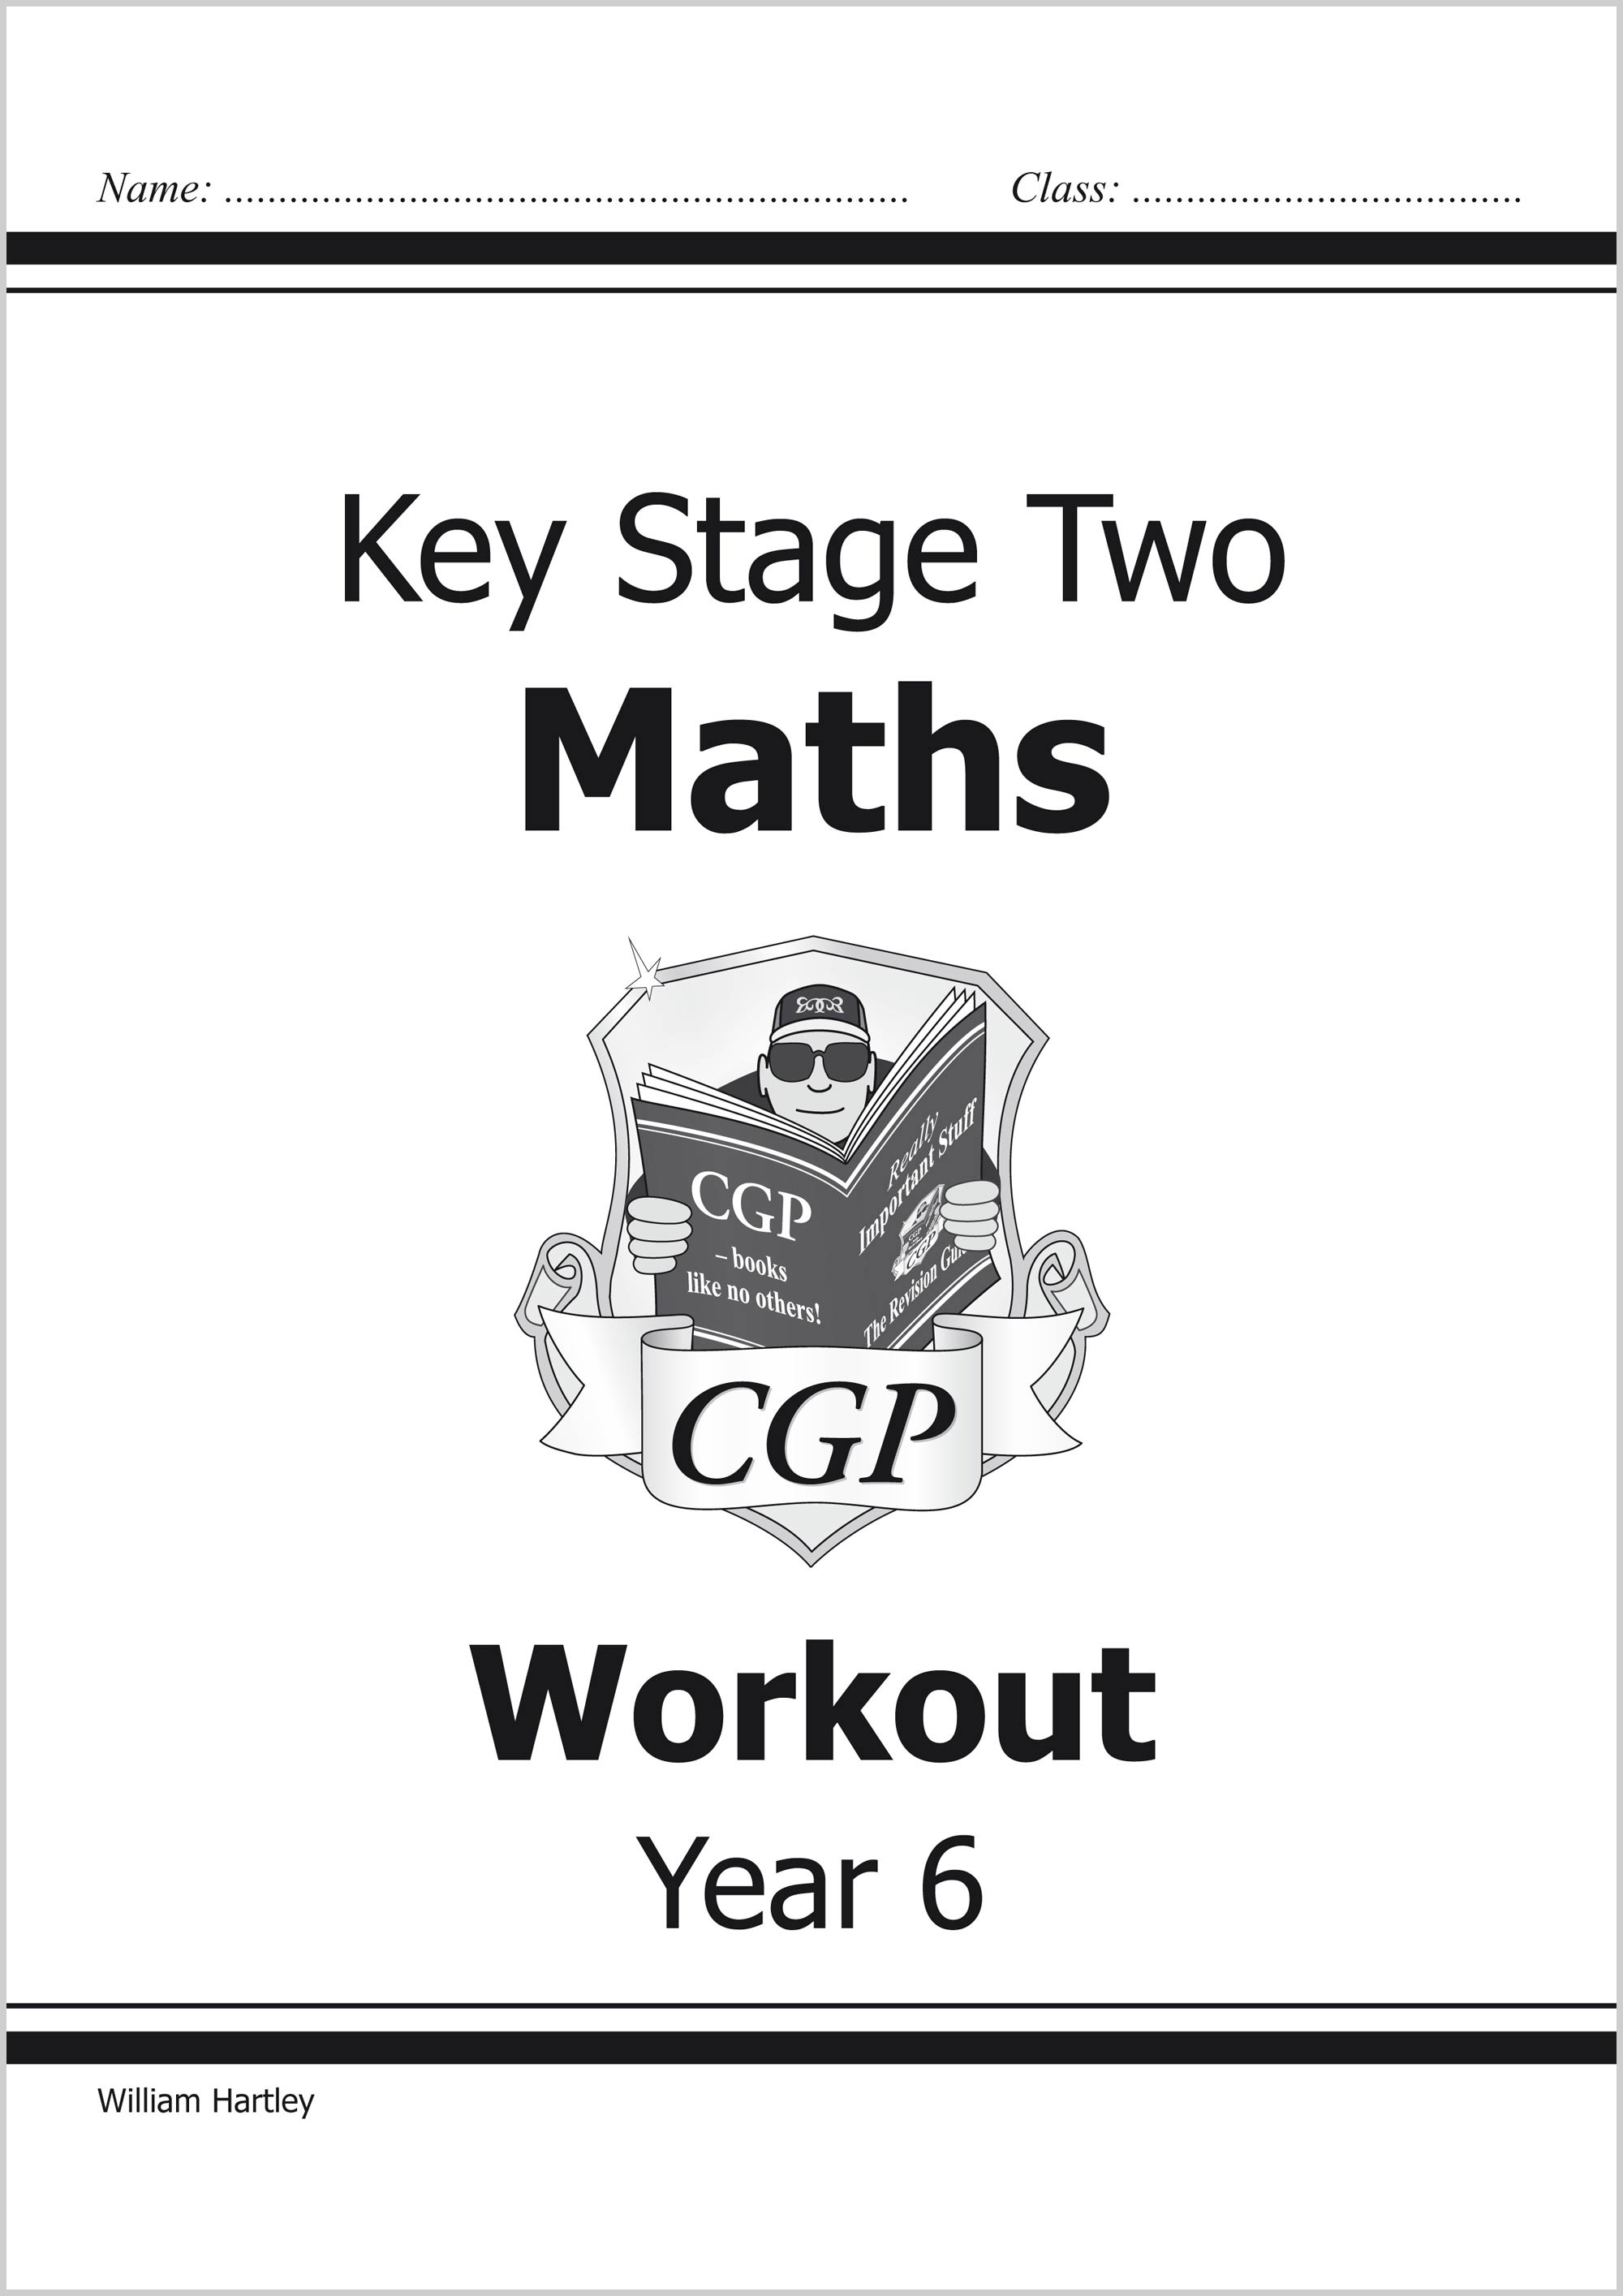 M6W21 - KS2 Maths Workout - Year 6